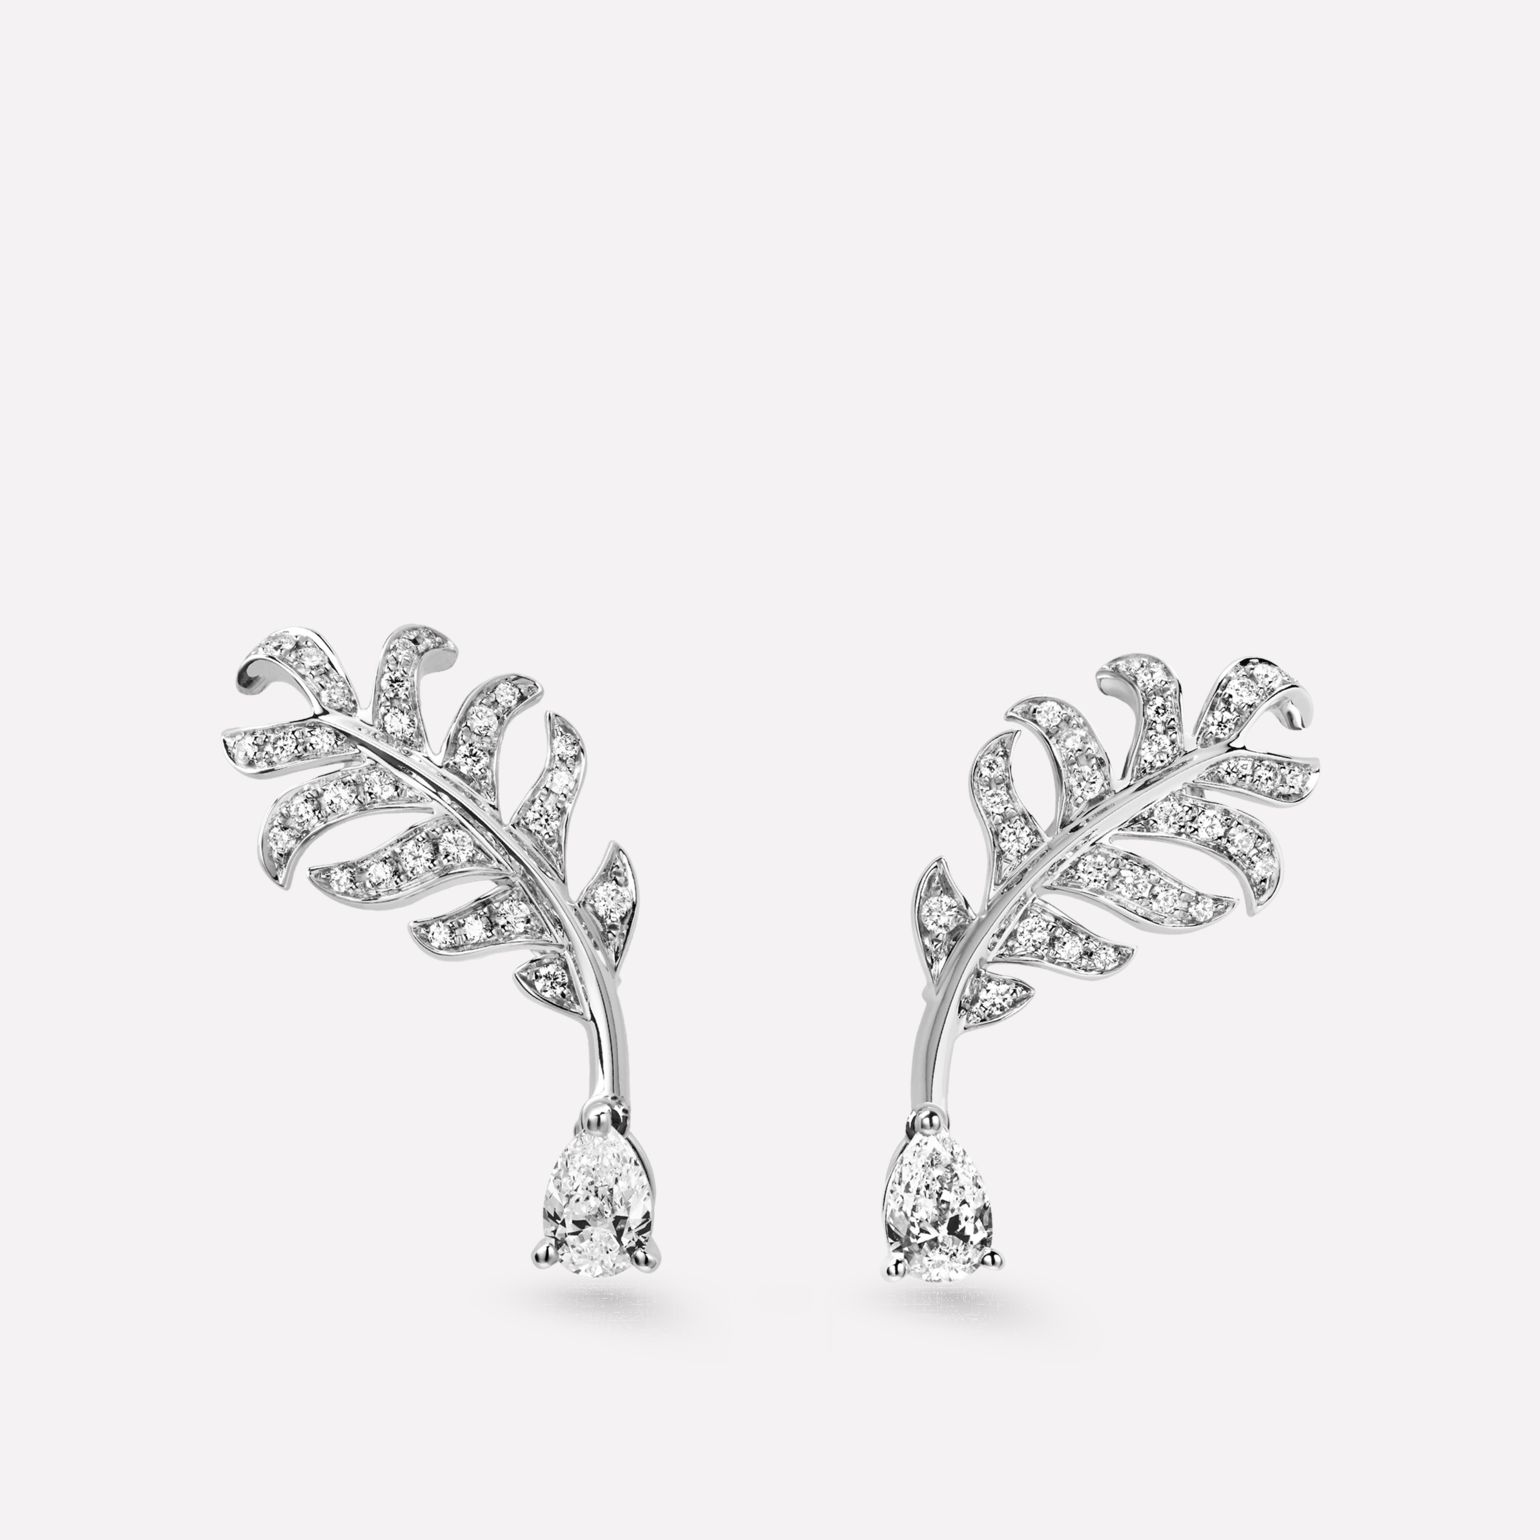 Boucles d'oreilles Plume de CHANEL Or blanc 18 carats, diamants